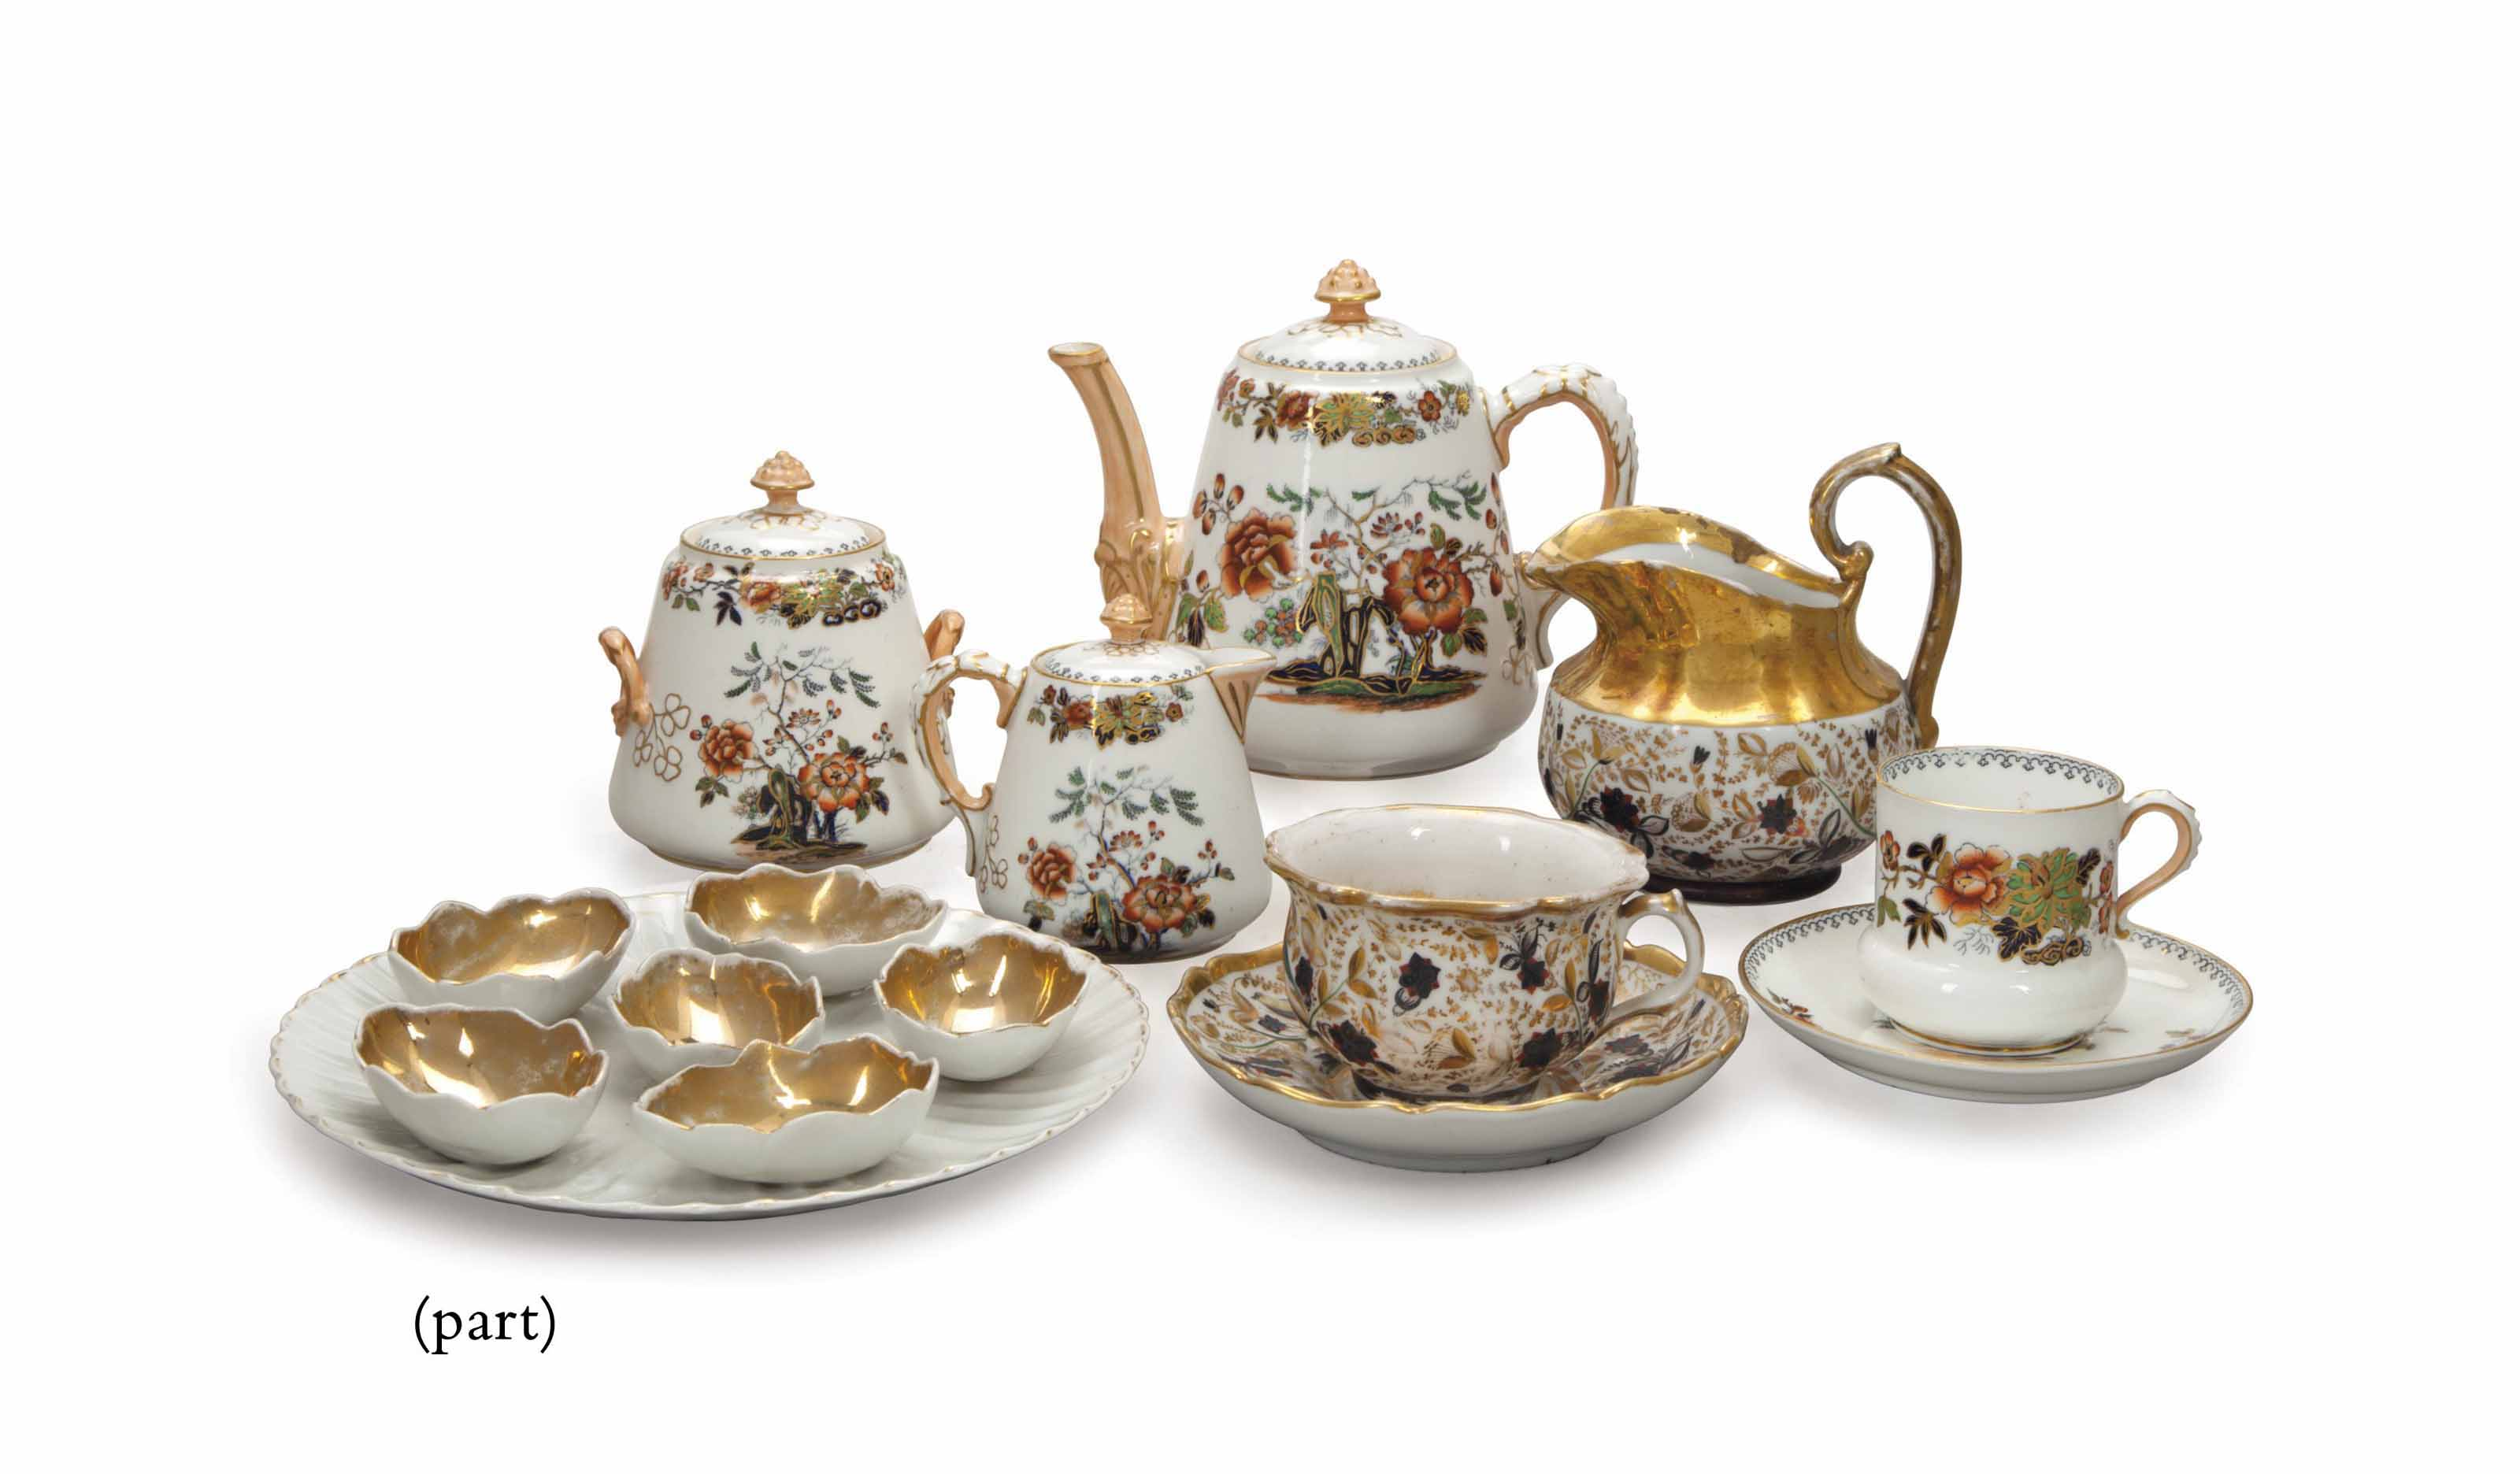 AN ASSEMBLED ENGLISH AND RUSSIAN PORCELAIN TEA SERVICE